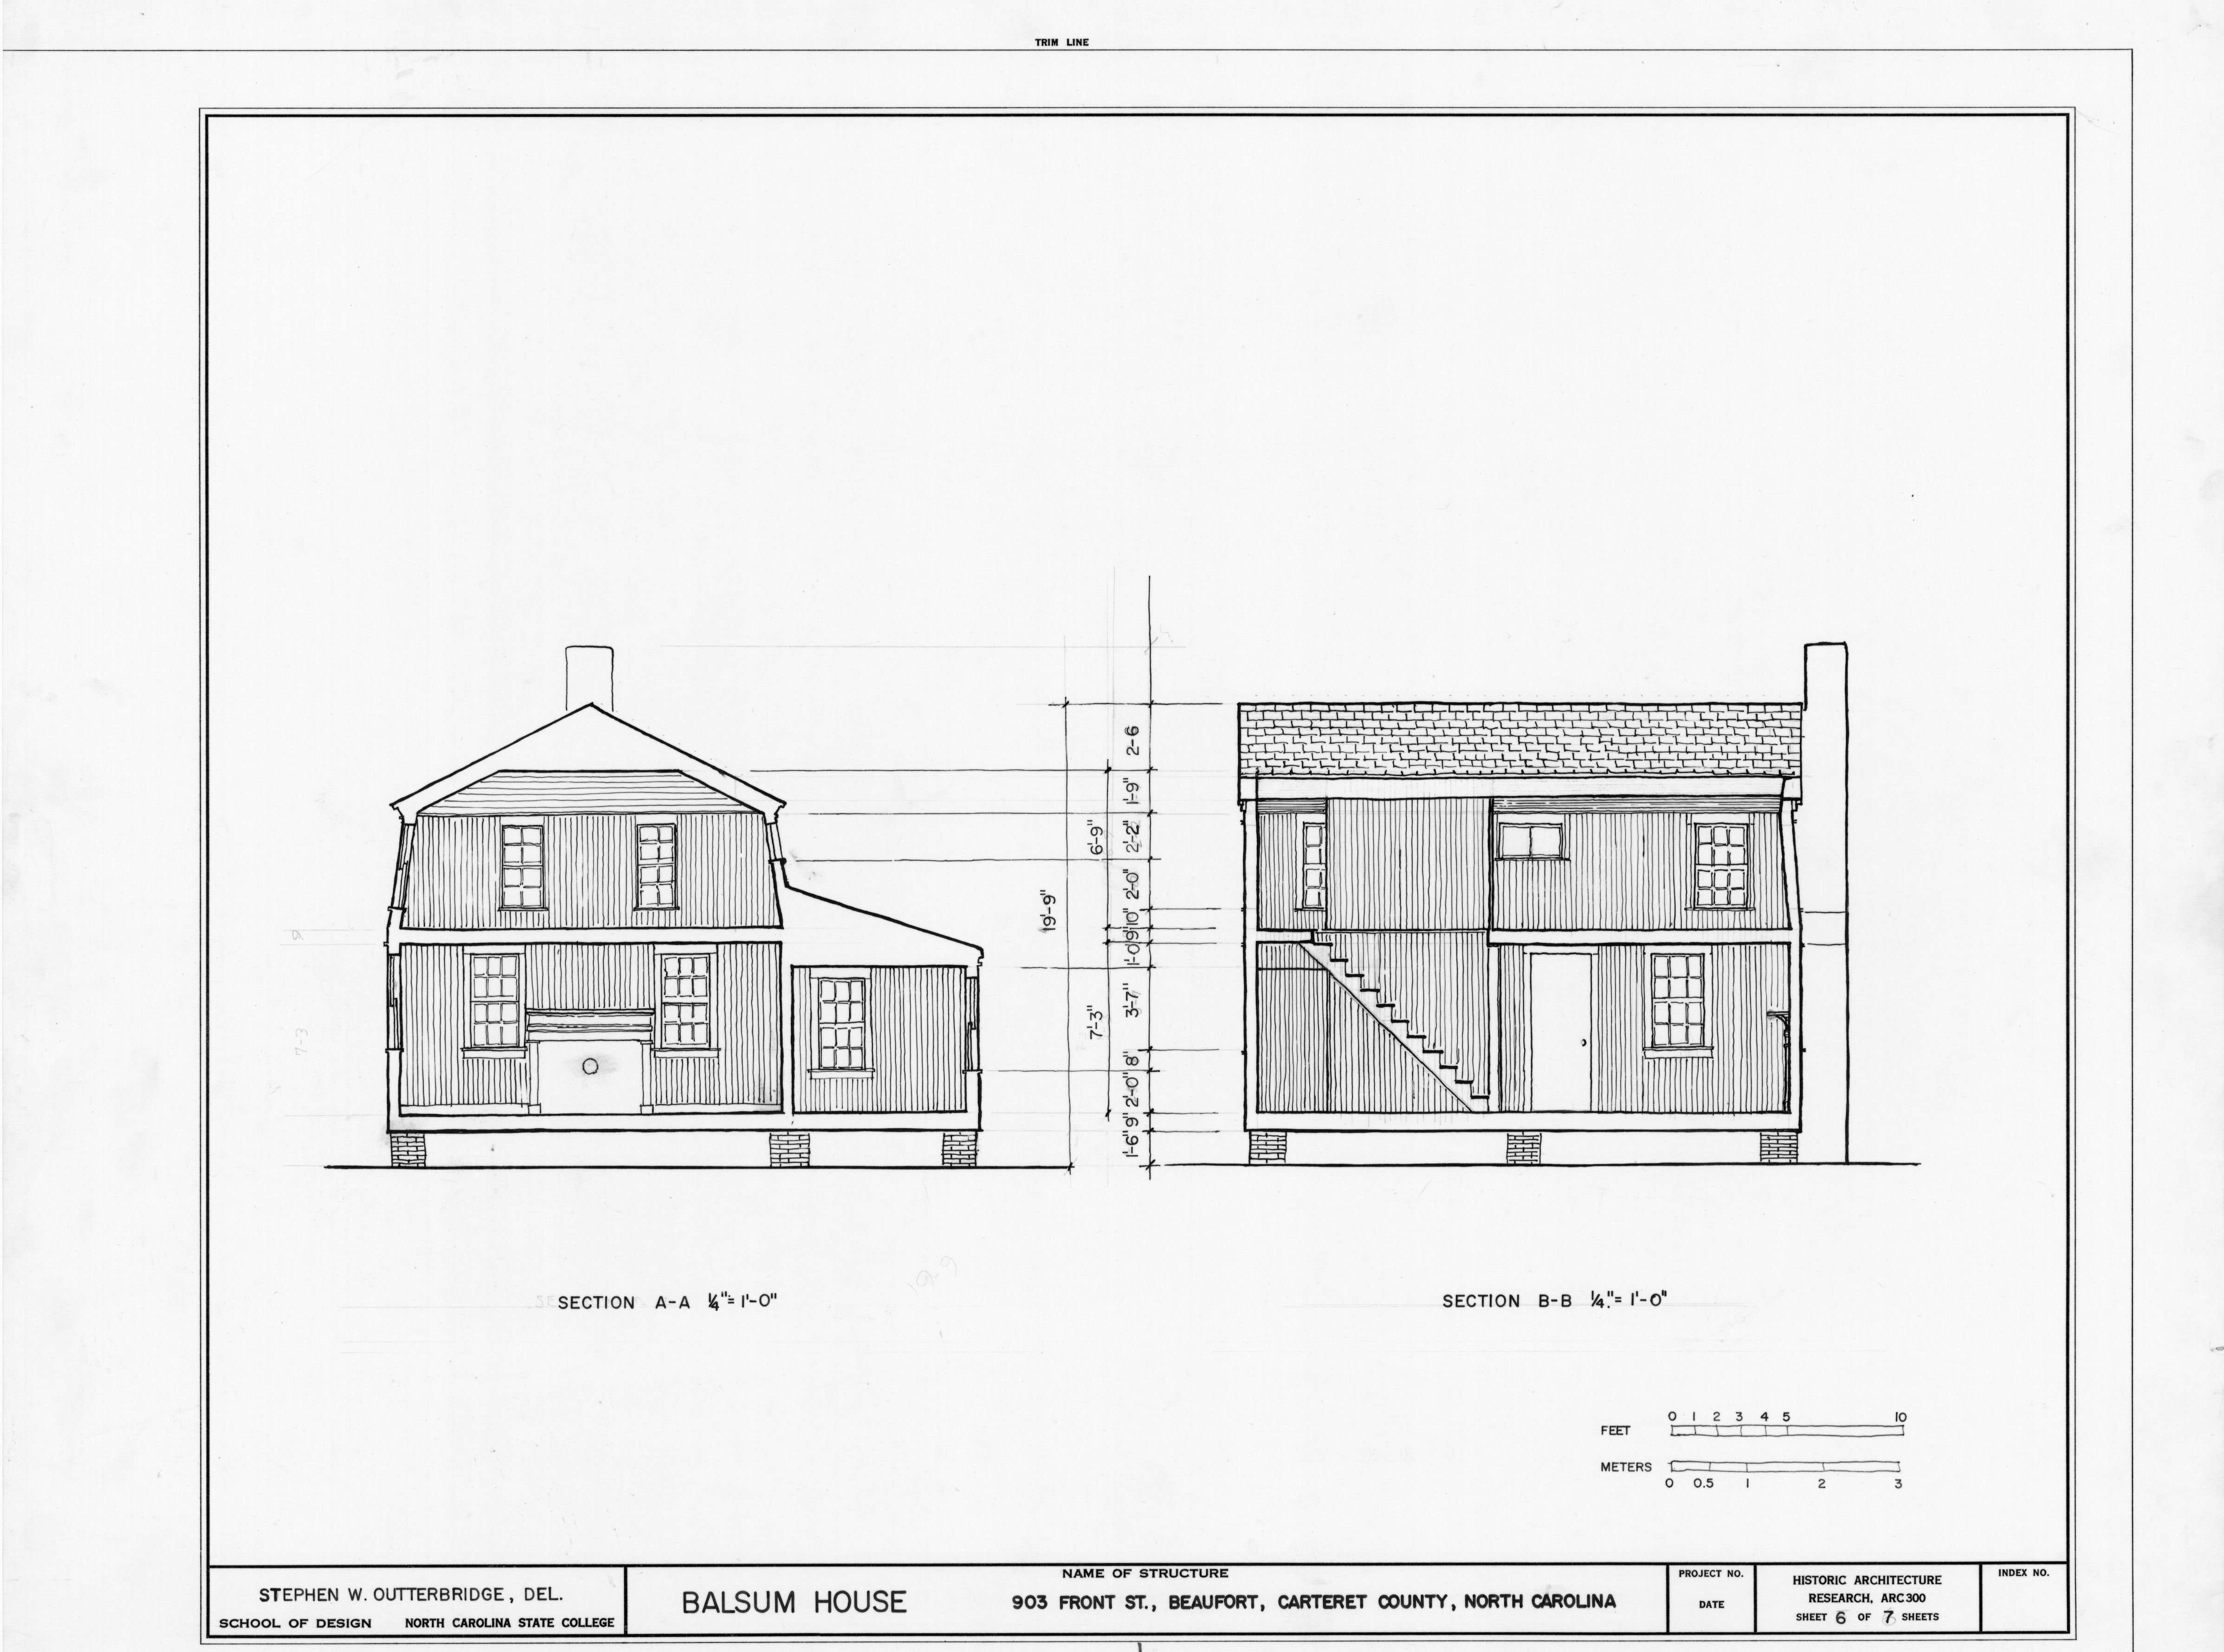 Longitudinal Section And Cross Section And Longitudinal Sections